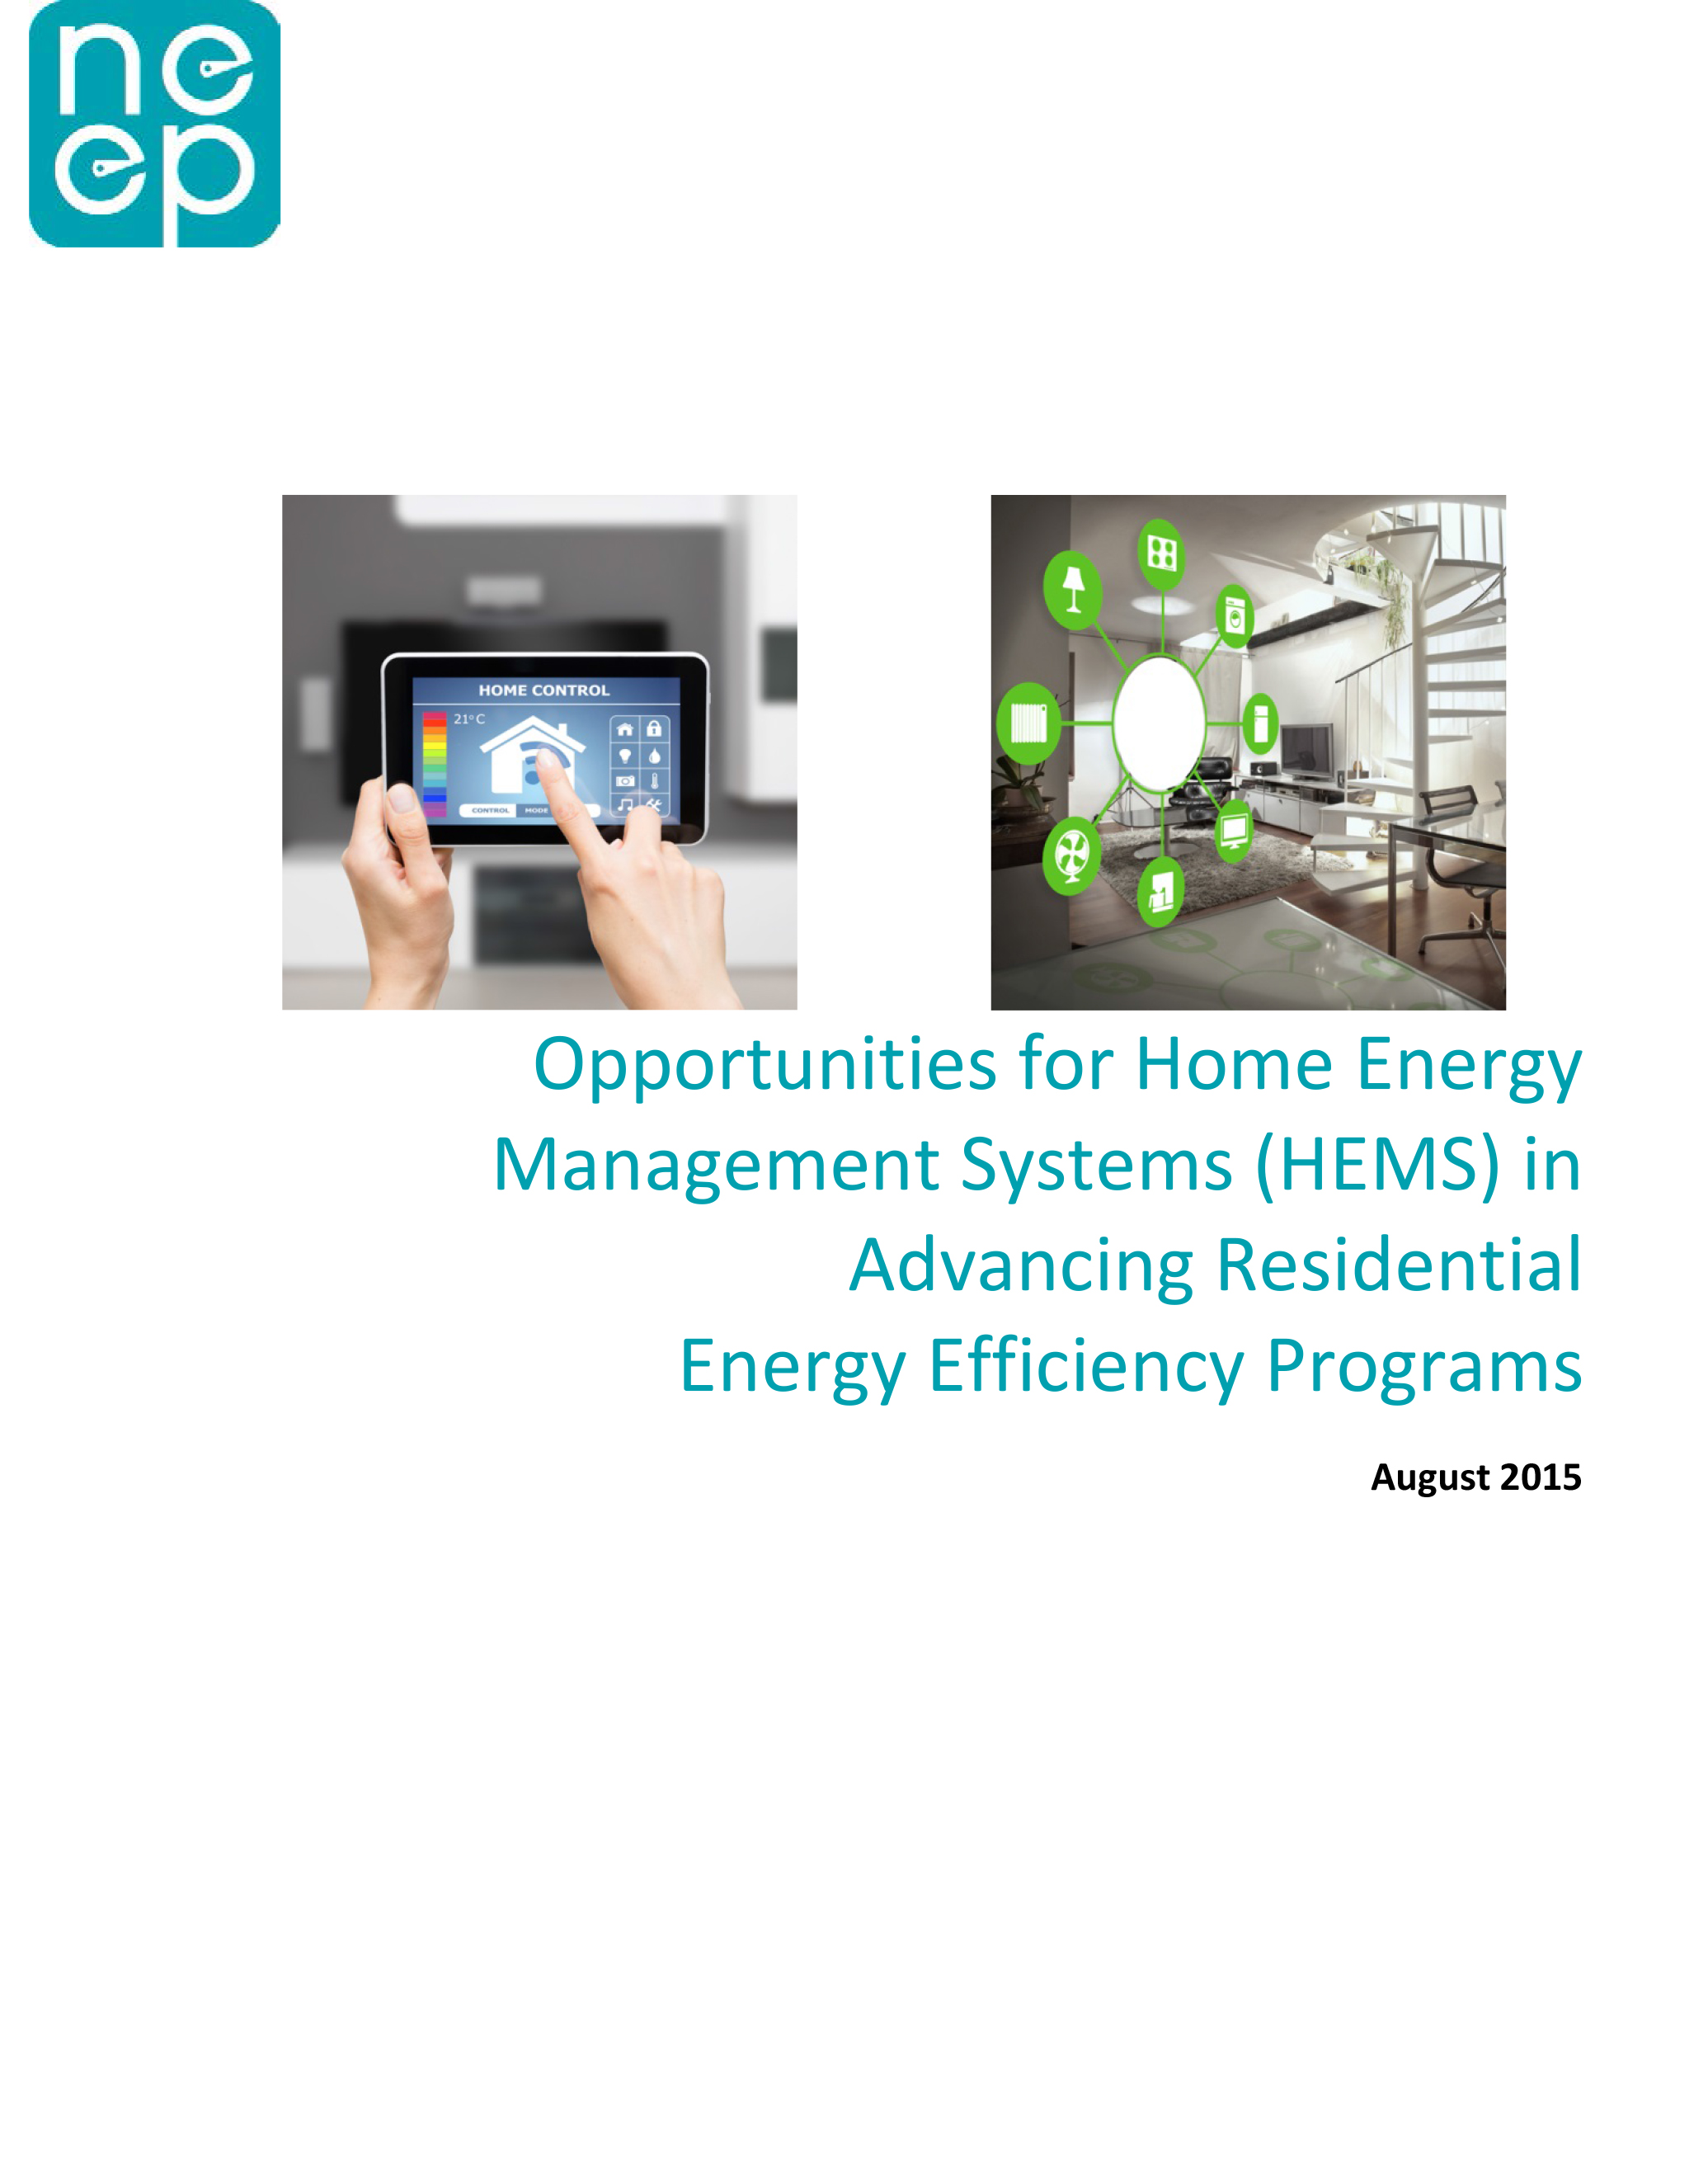 AMI, advanced metering infrastructure, grid modernization, reforming the energy vision, REV, home energy management, home energy management systems, SEE Action, smart meters